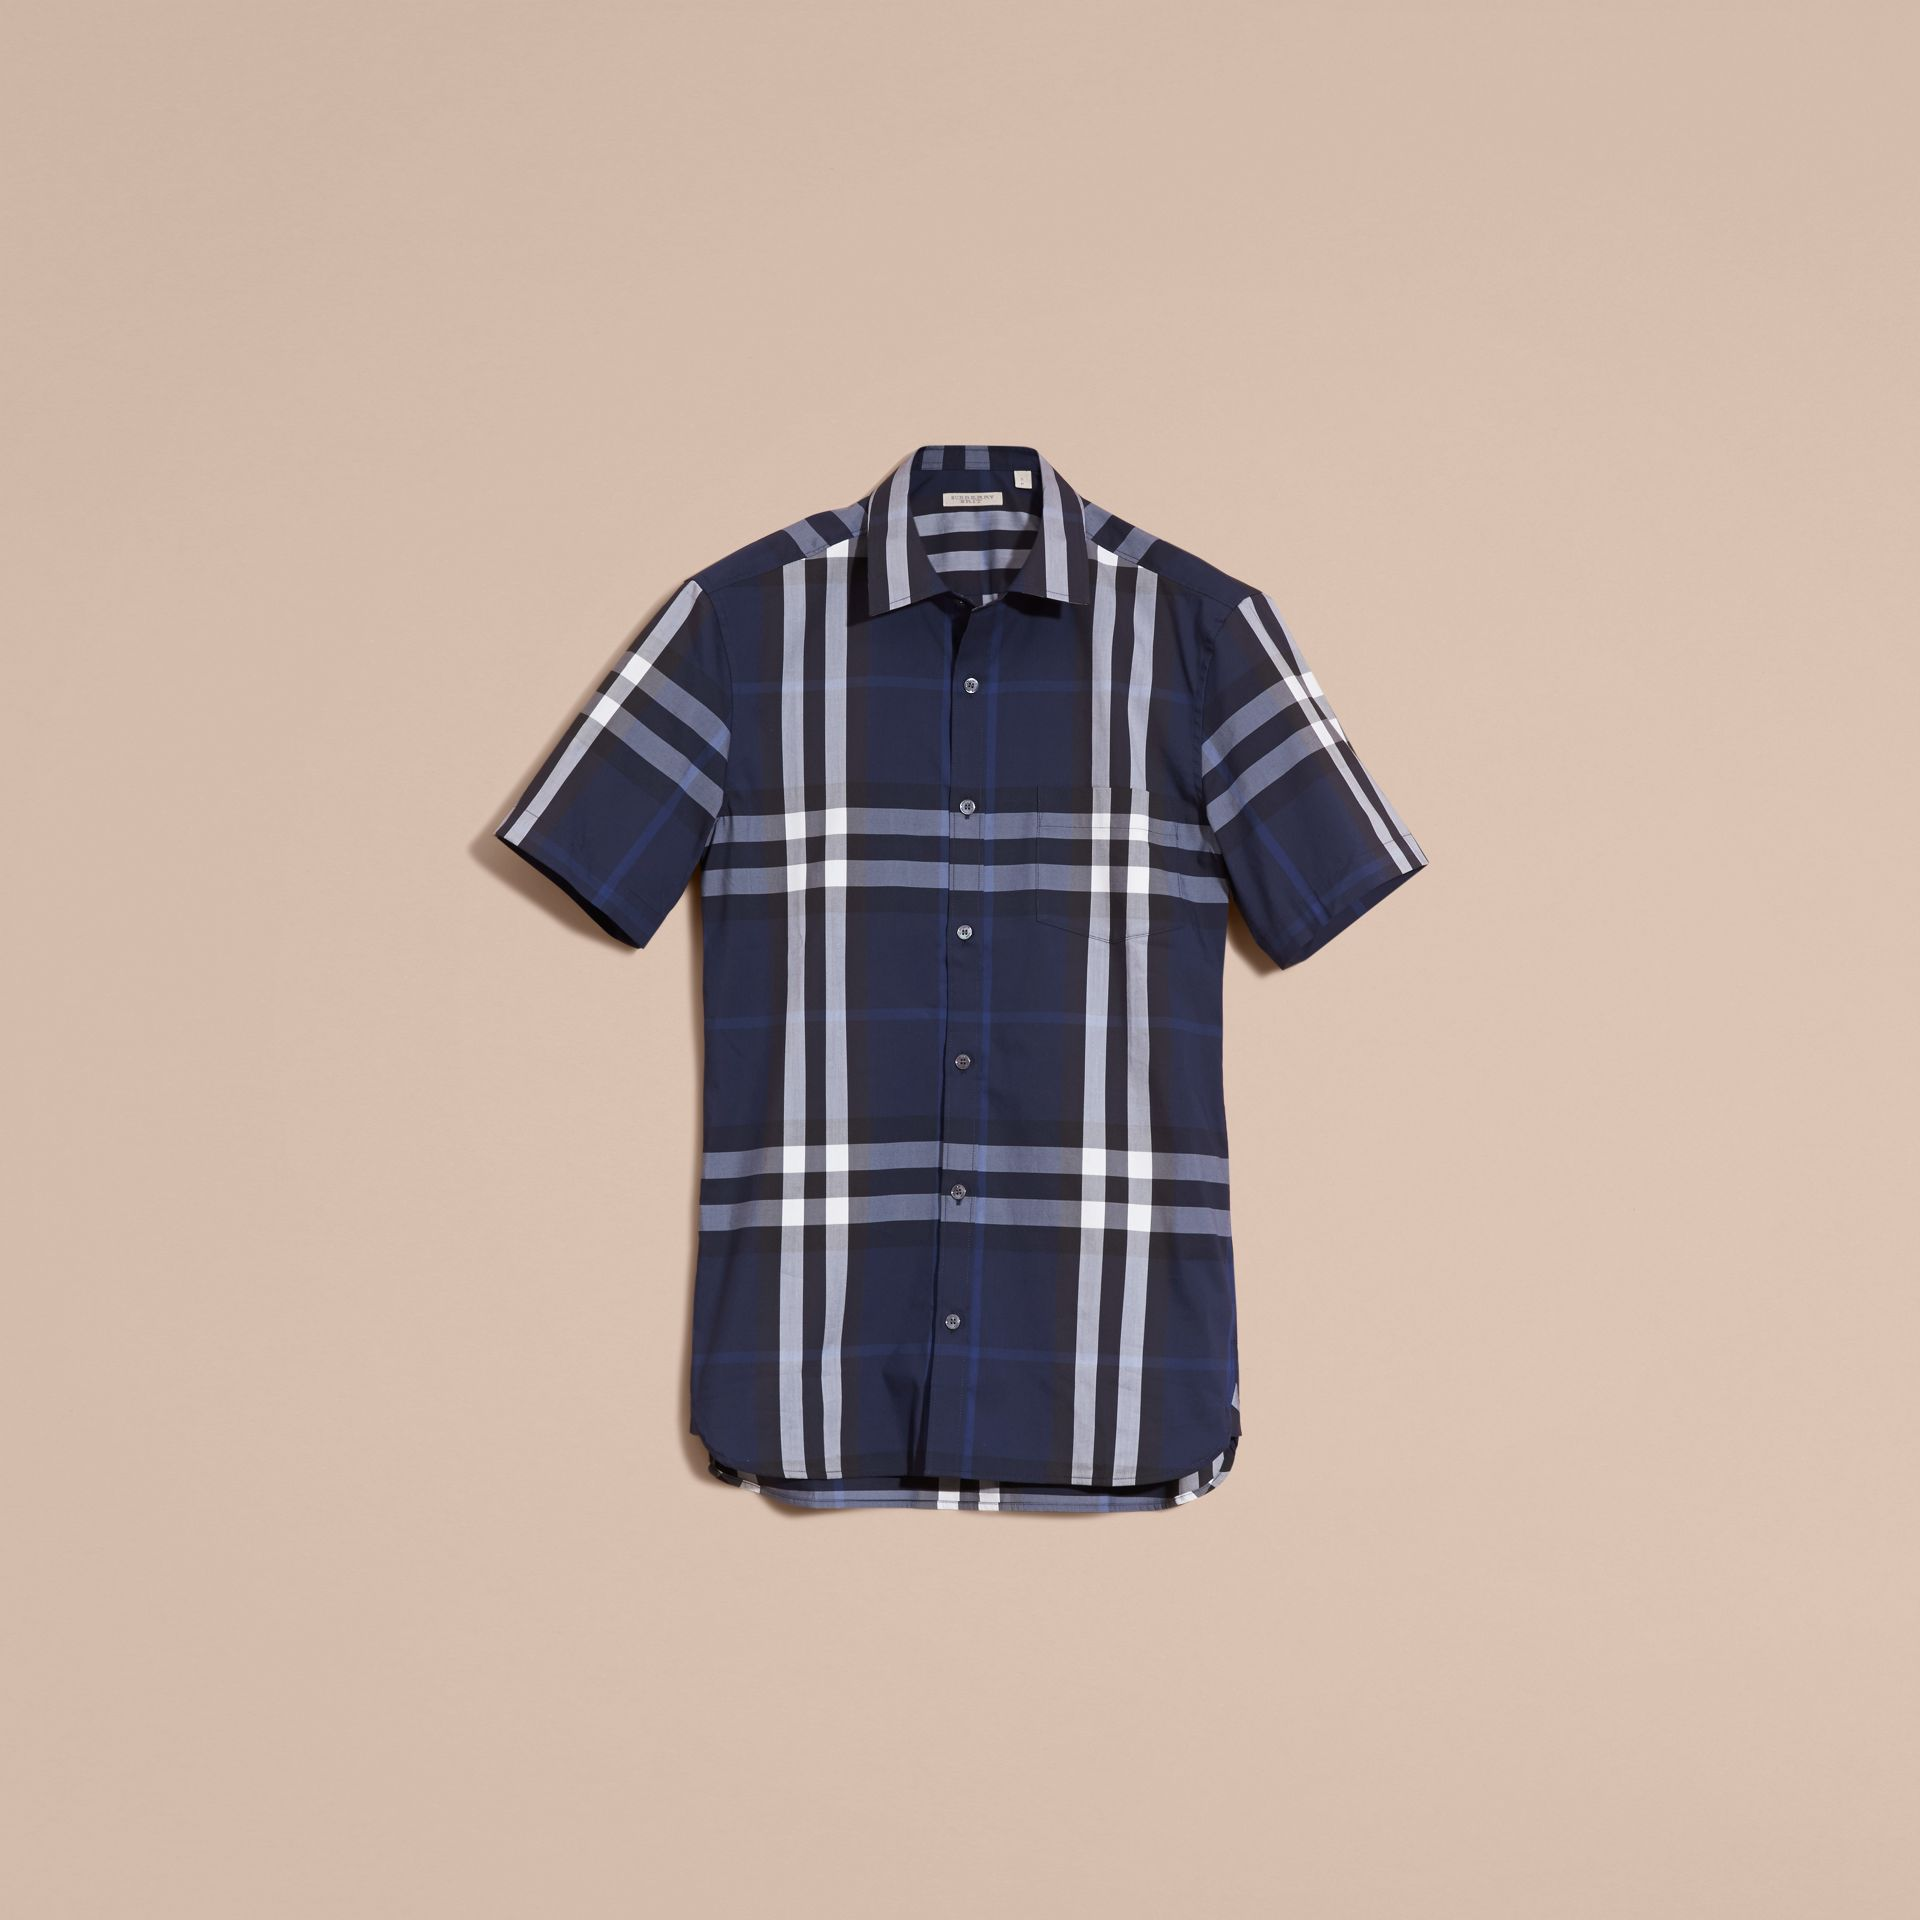 Short-sleeved Check Stretch Cotton Shirt in Indigo Blue - Men | Burberry Canada - gallery image 4